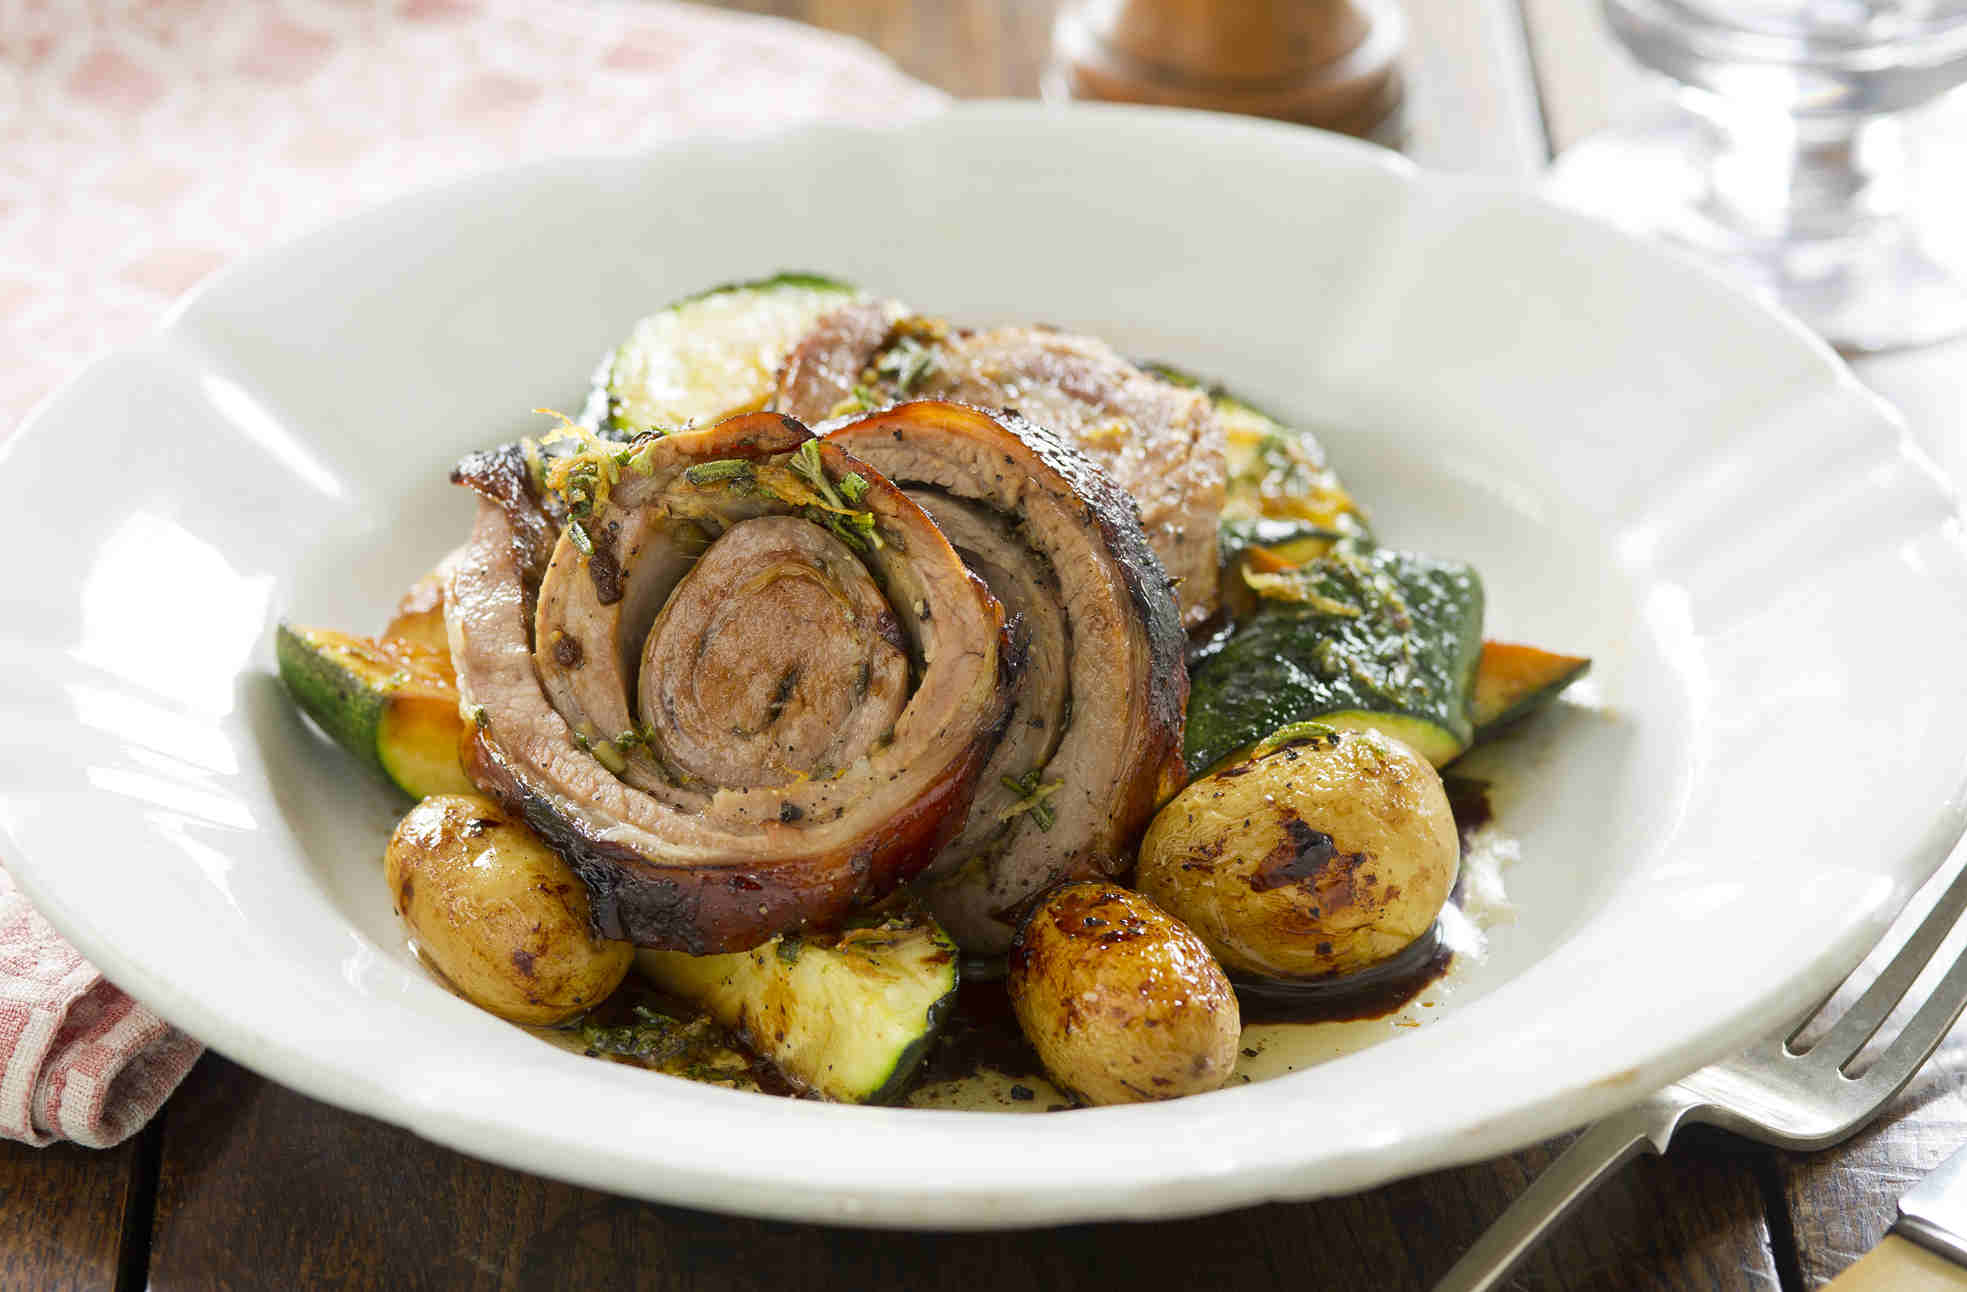 Roasted breast of lamb